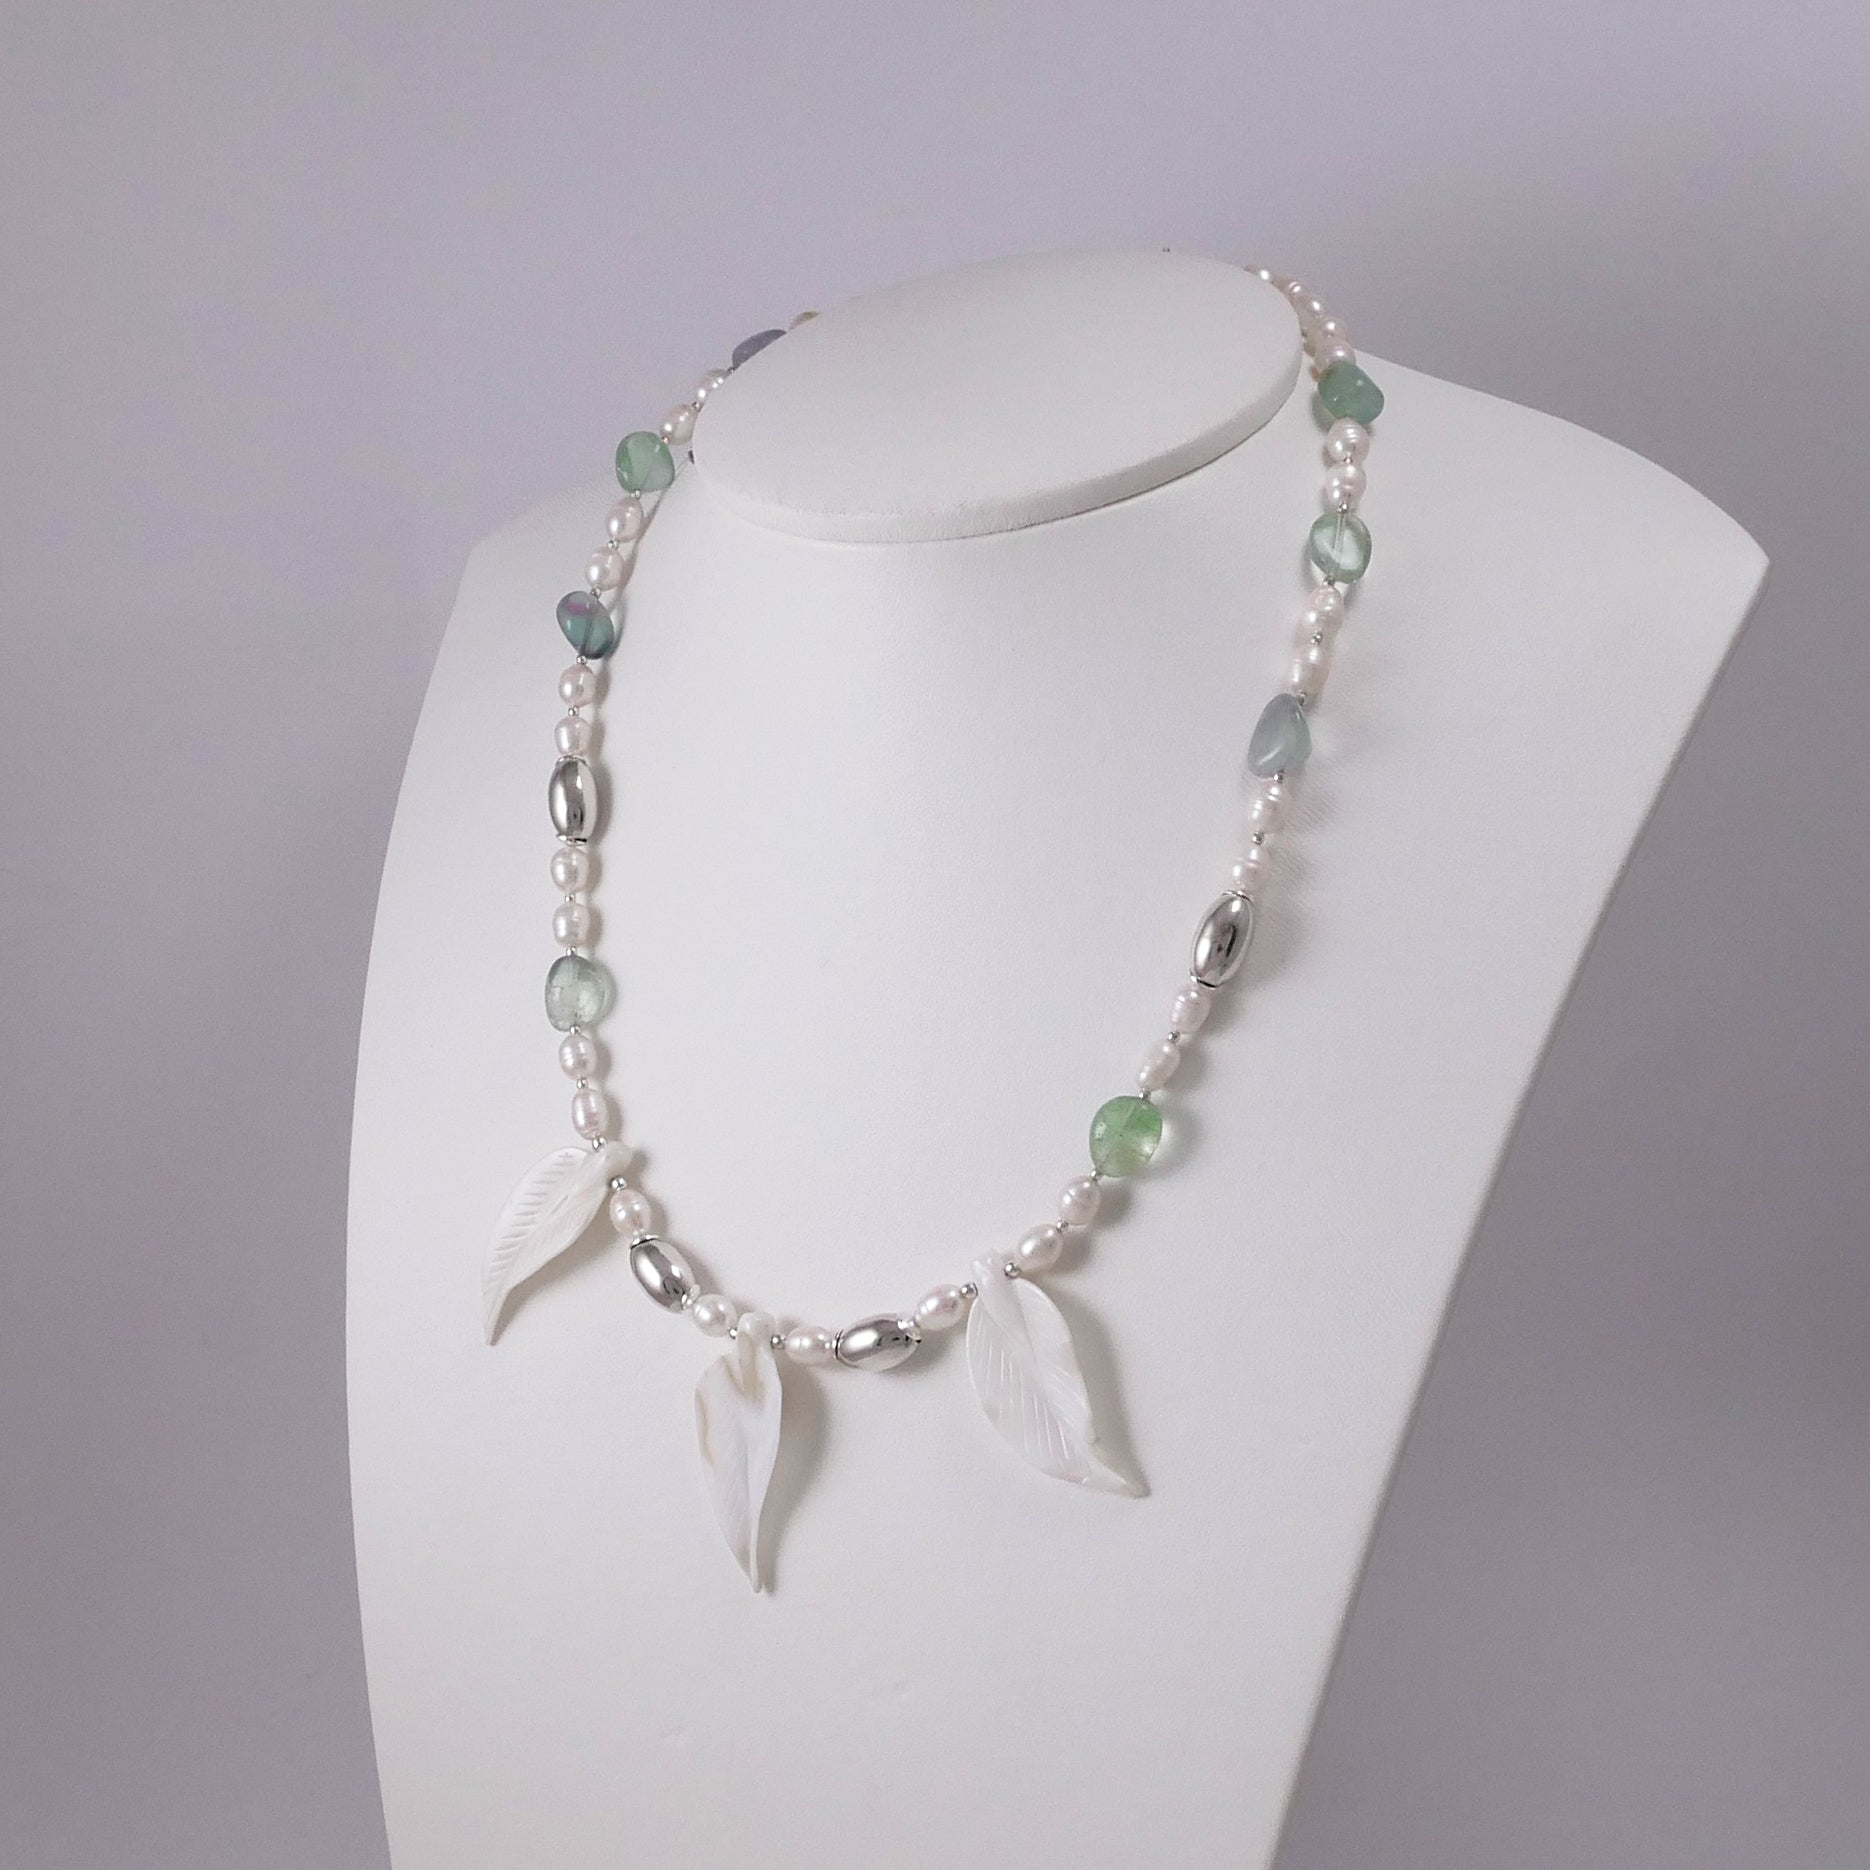 Pearls, Fluorites, Mother of Pearl Leaves, and Sterling Silver Necklace - Katerina Roukouna